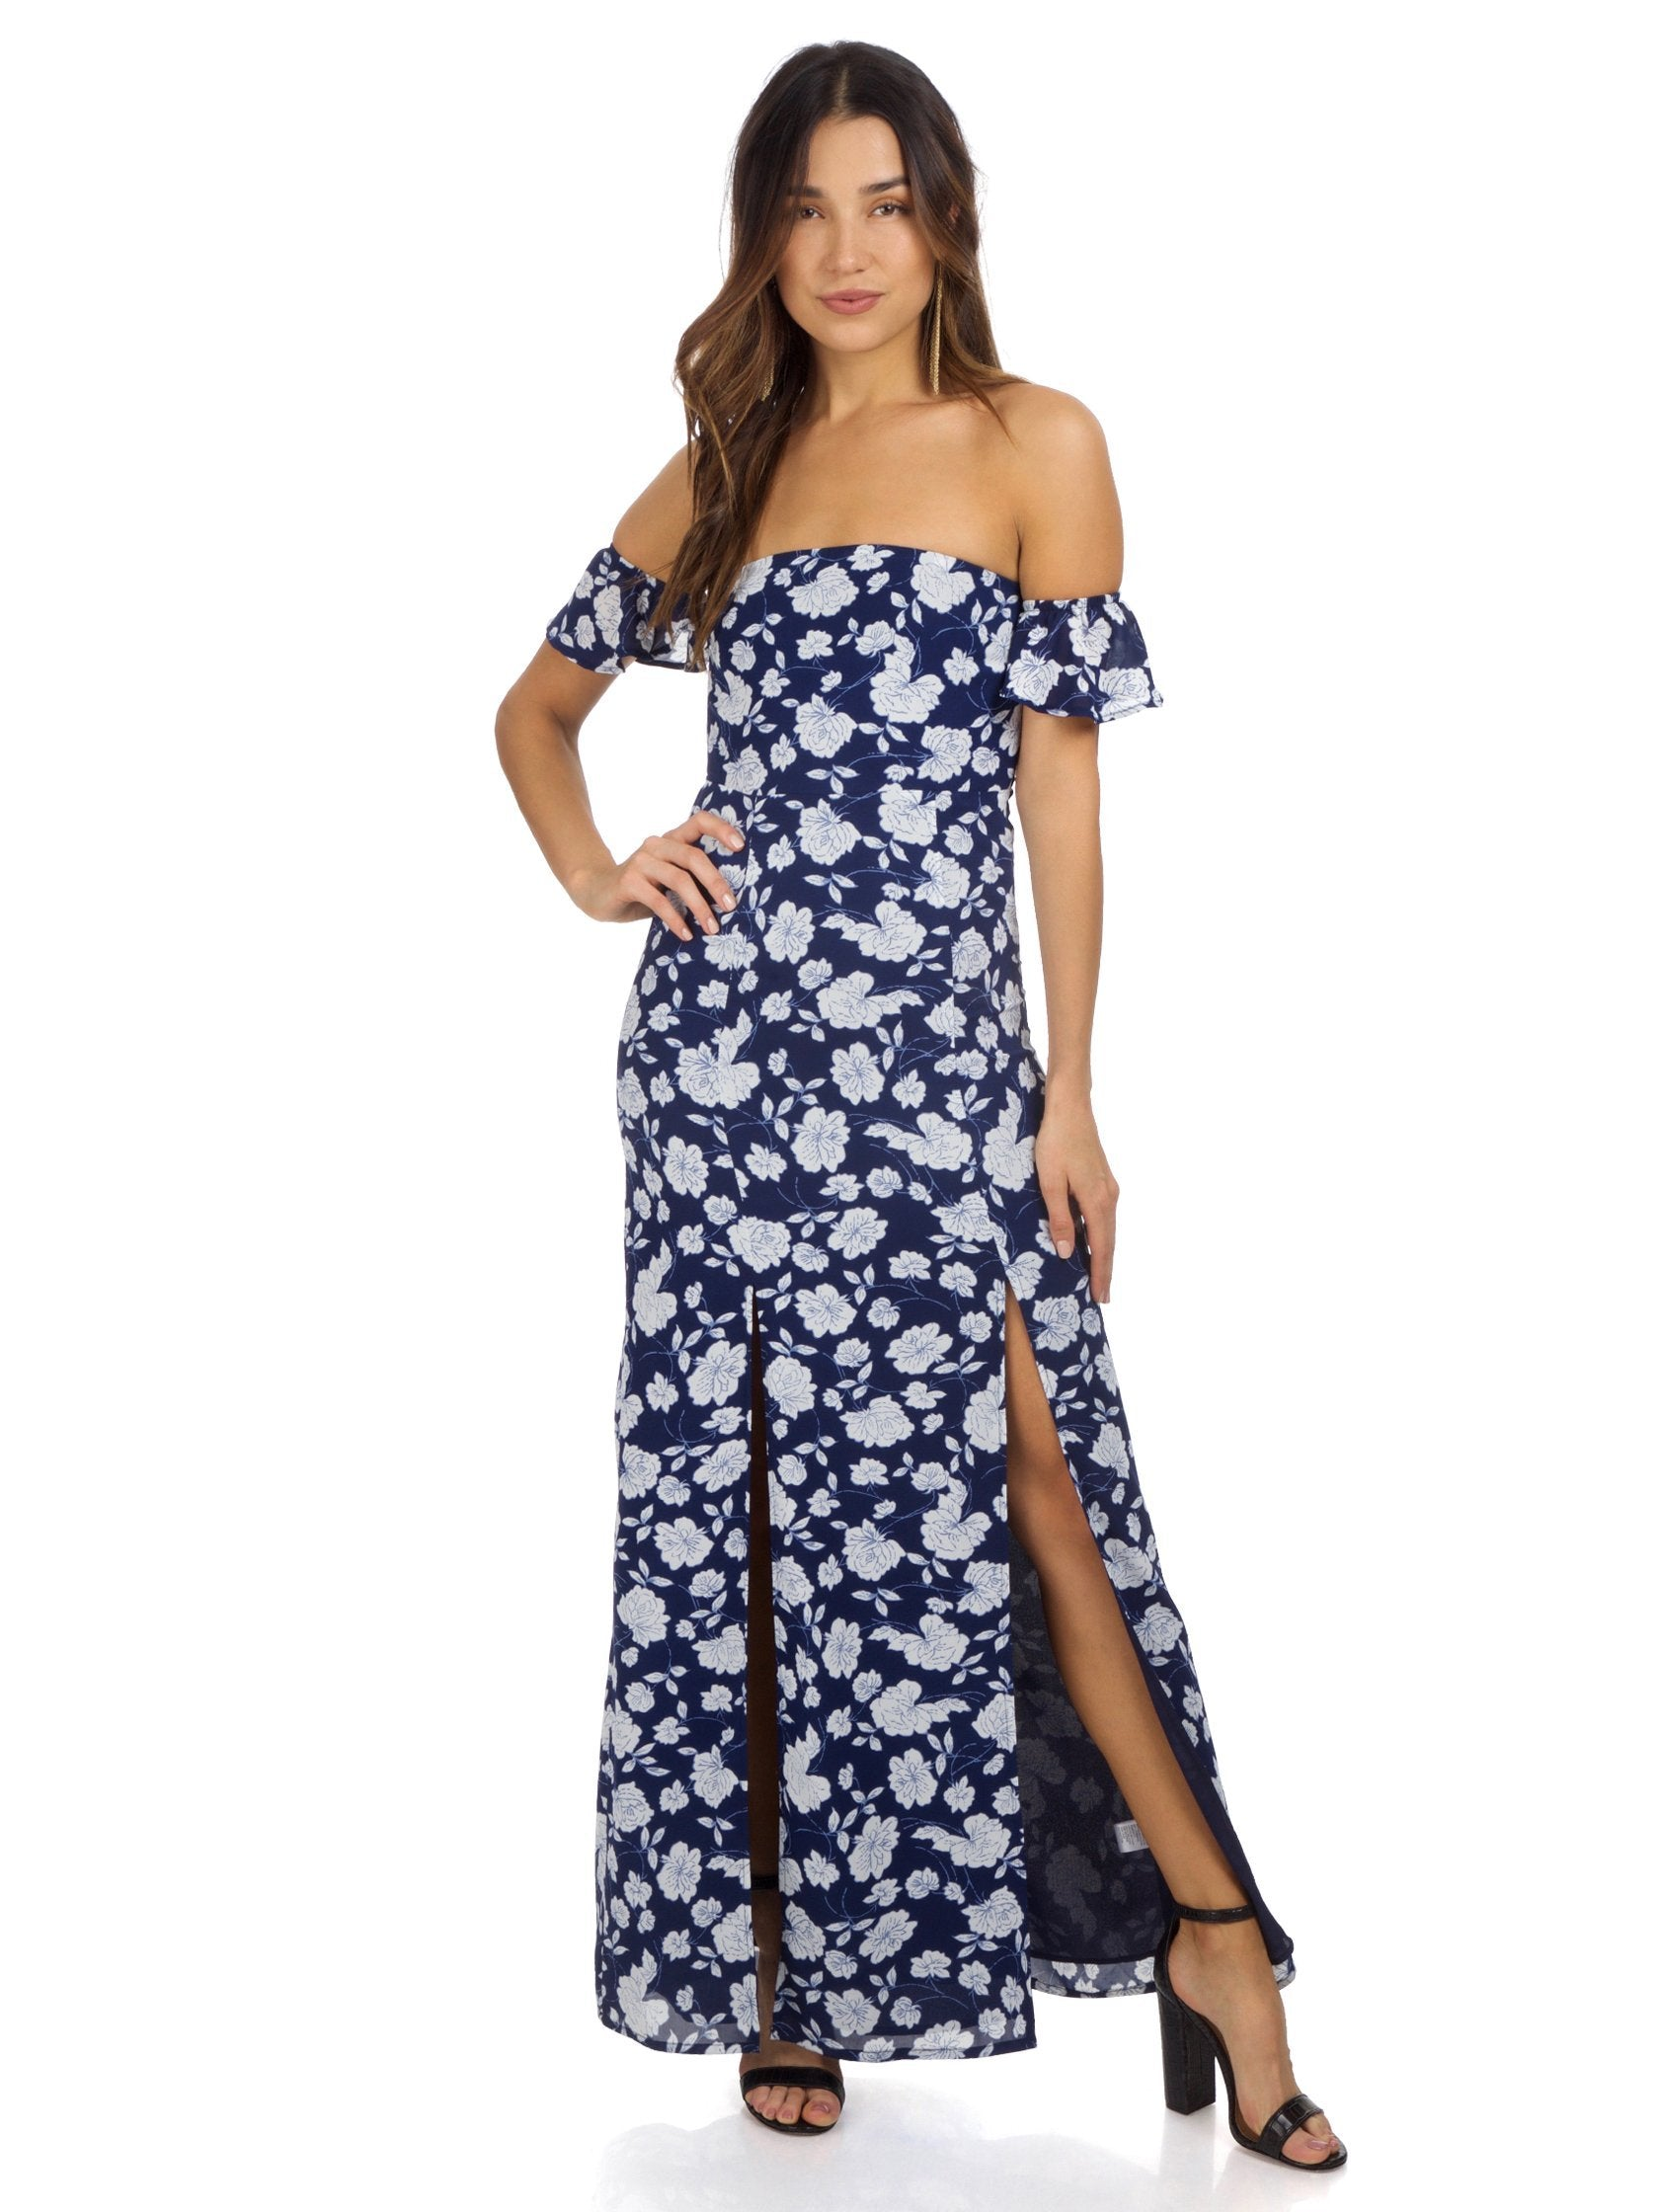 Girl outfit in a dress rental from Lucca Couture called Off Shoulder Maxi Dress